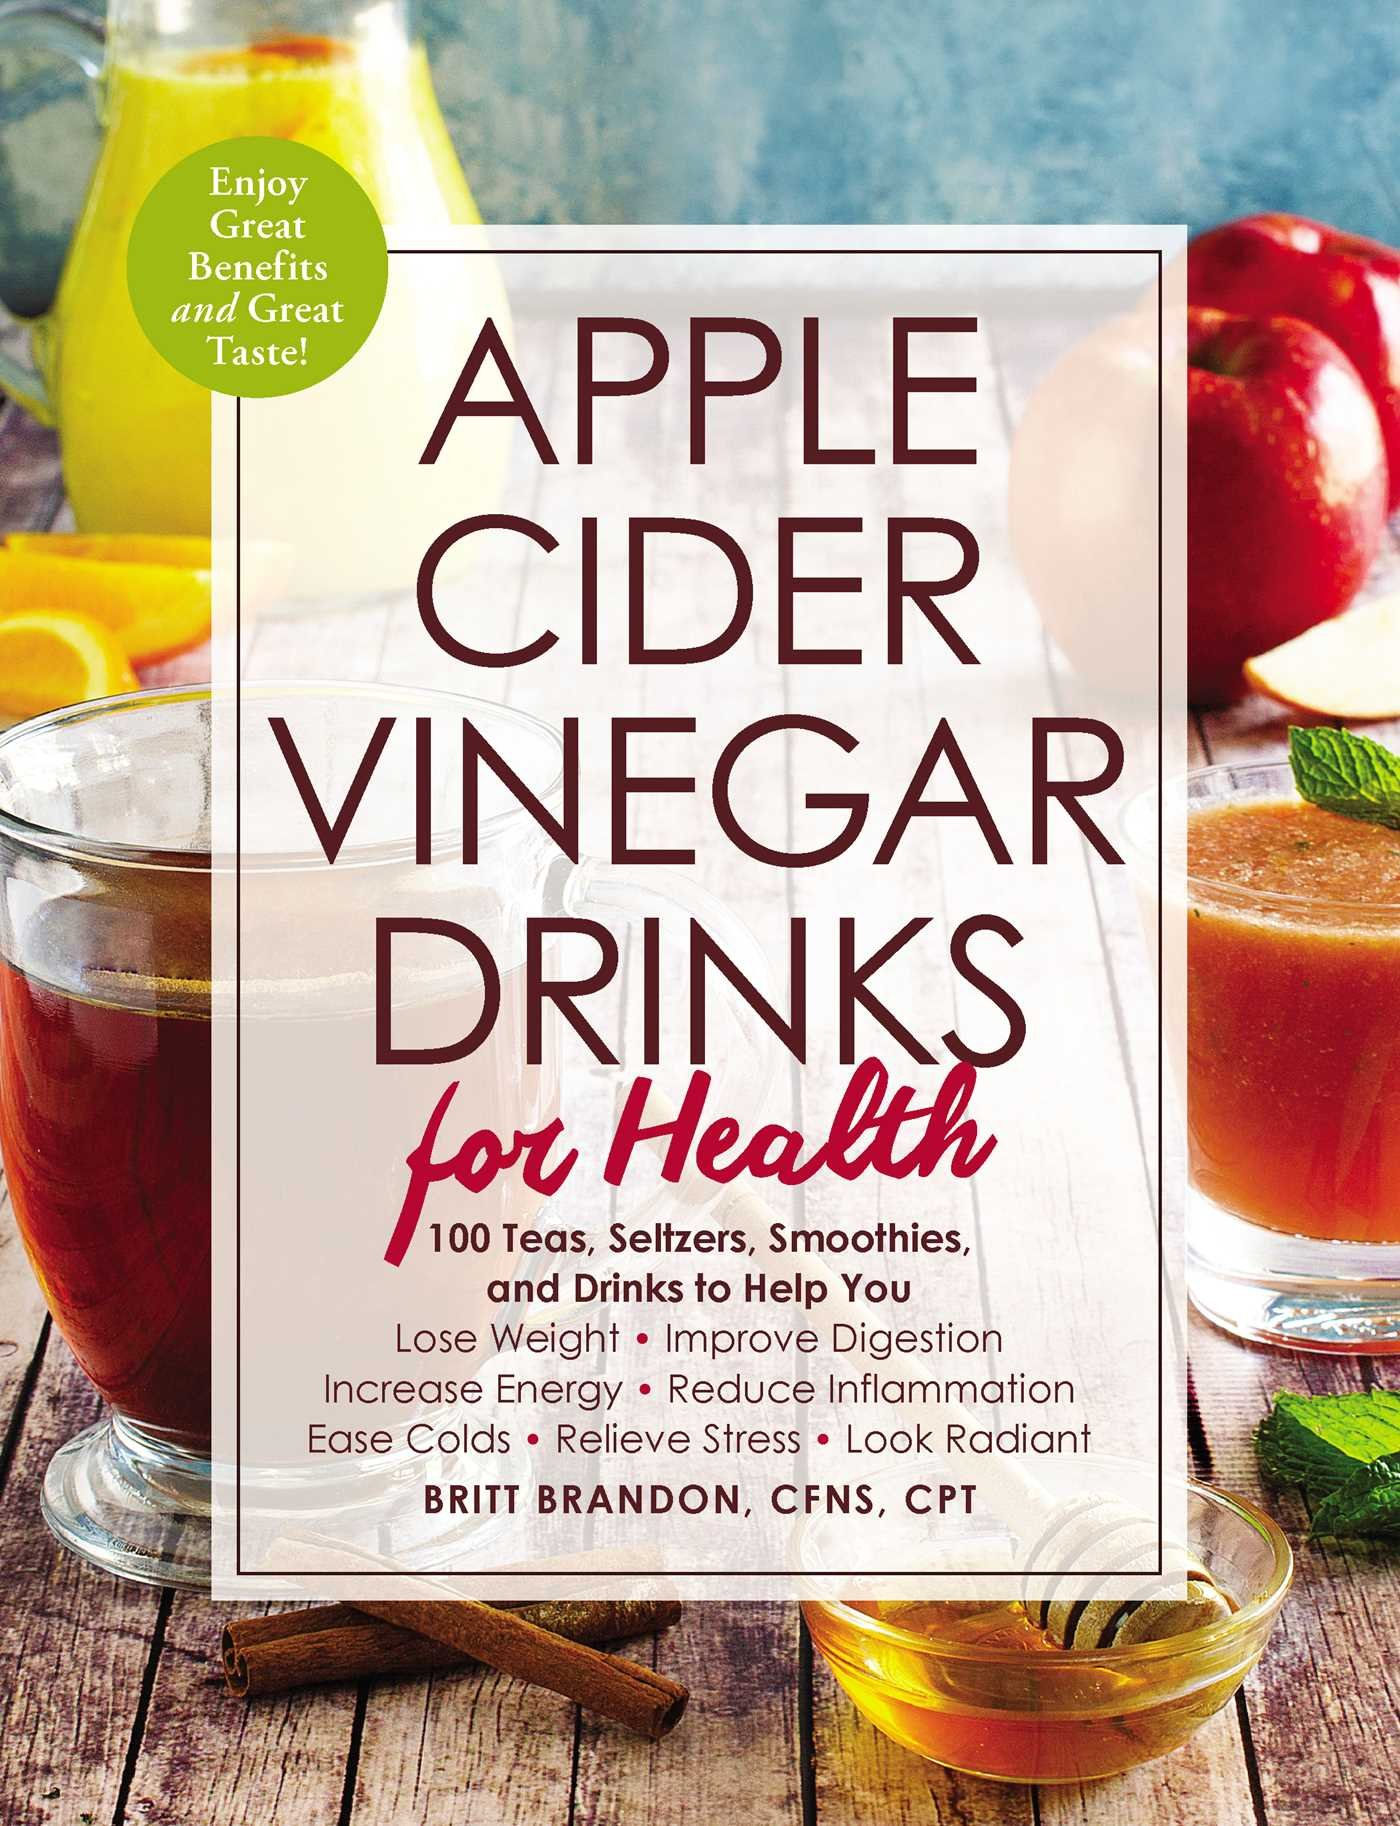 Download Apple Cider Vinegar Drinks for Health: 100 Teas, Seltzers, Smoothies, and Drinks to Help You • Lose Weight • Improve Digestion • Increase Energy • ... • Ease Colds • Relieve Stress • Look Radiant pdf